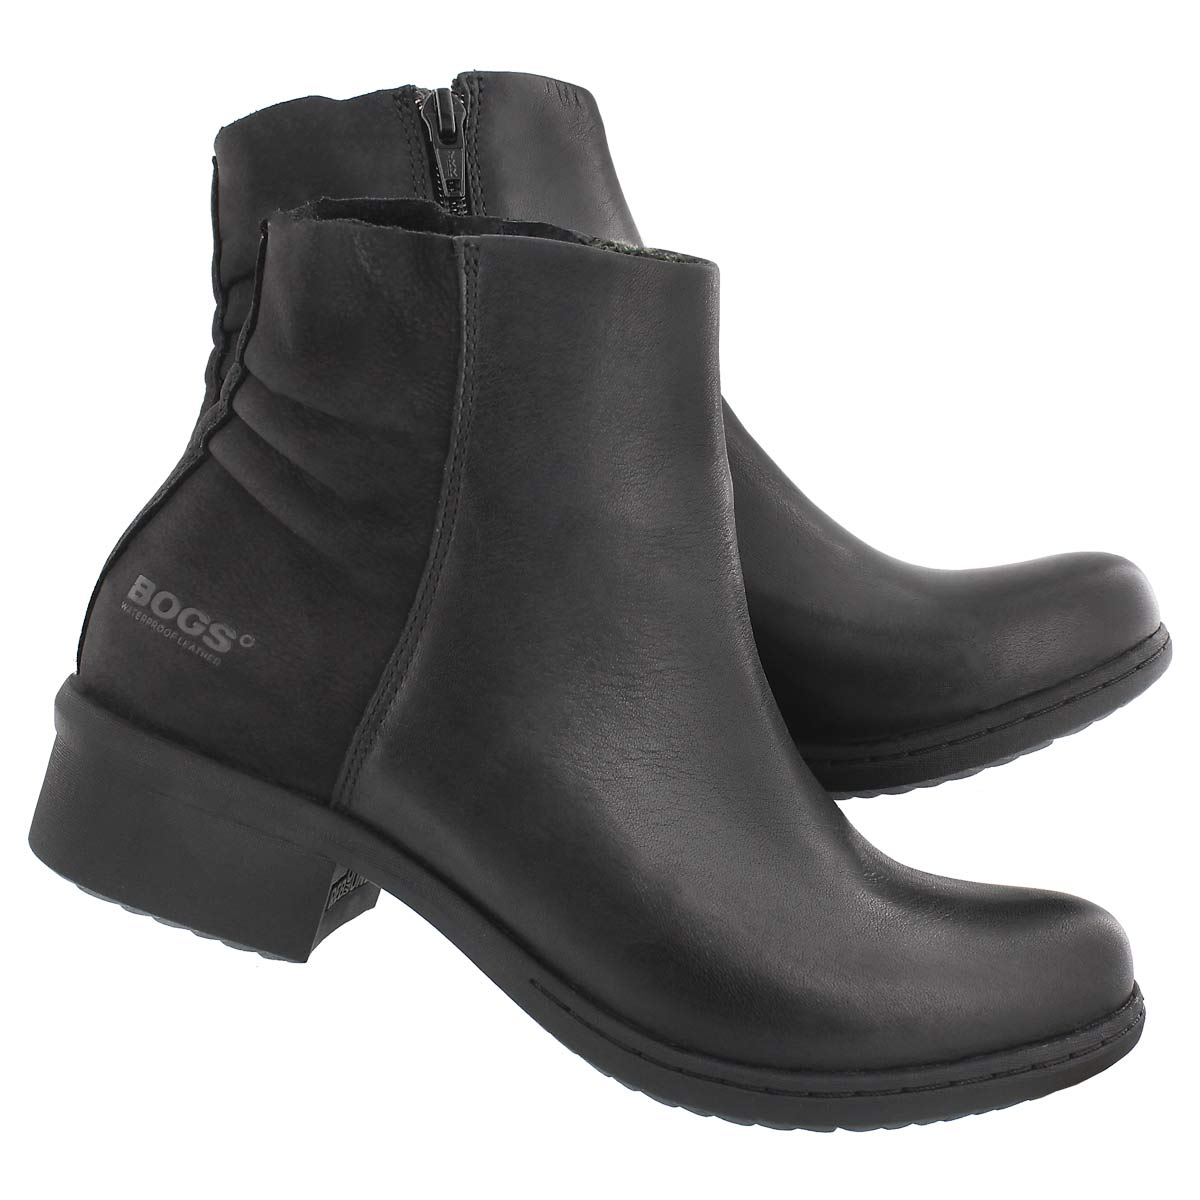 Lds Carly Low black wtpf ankle boot